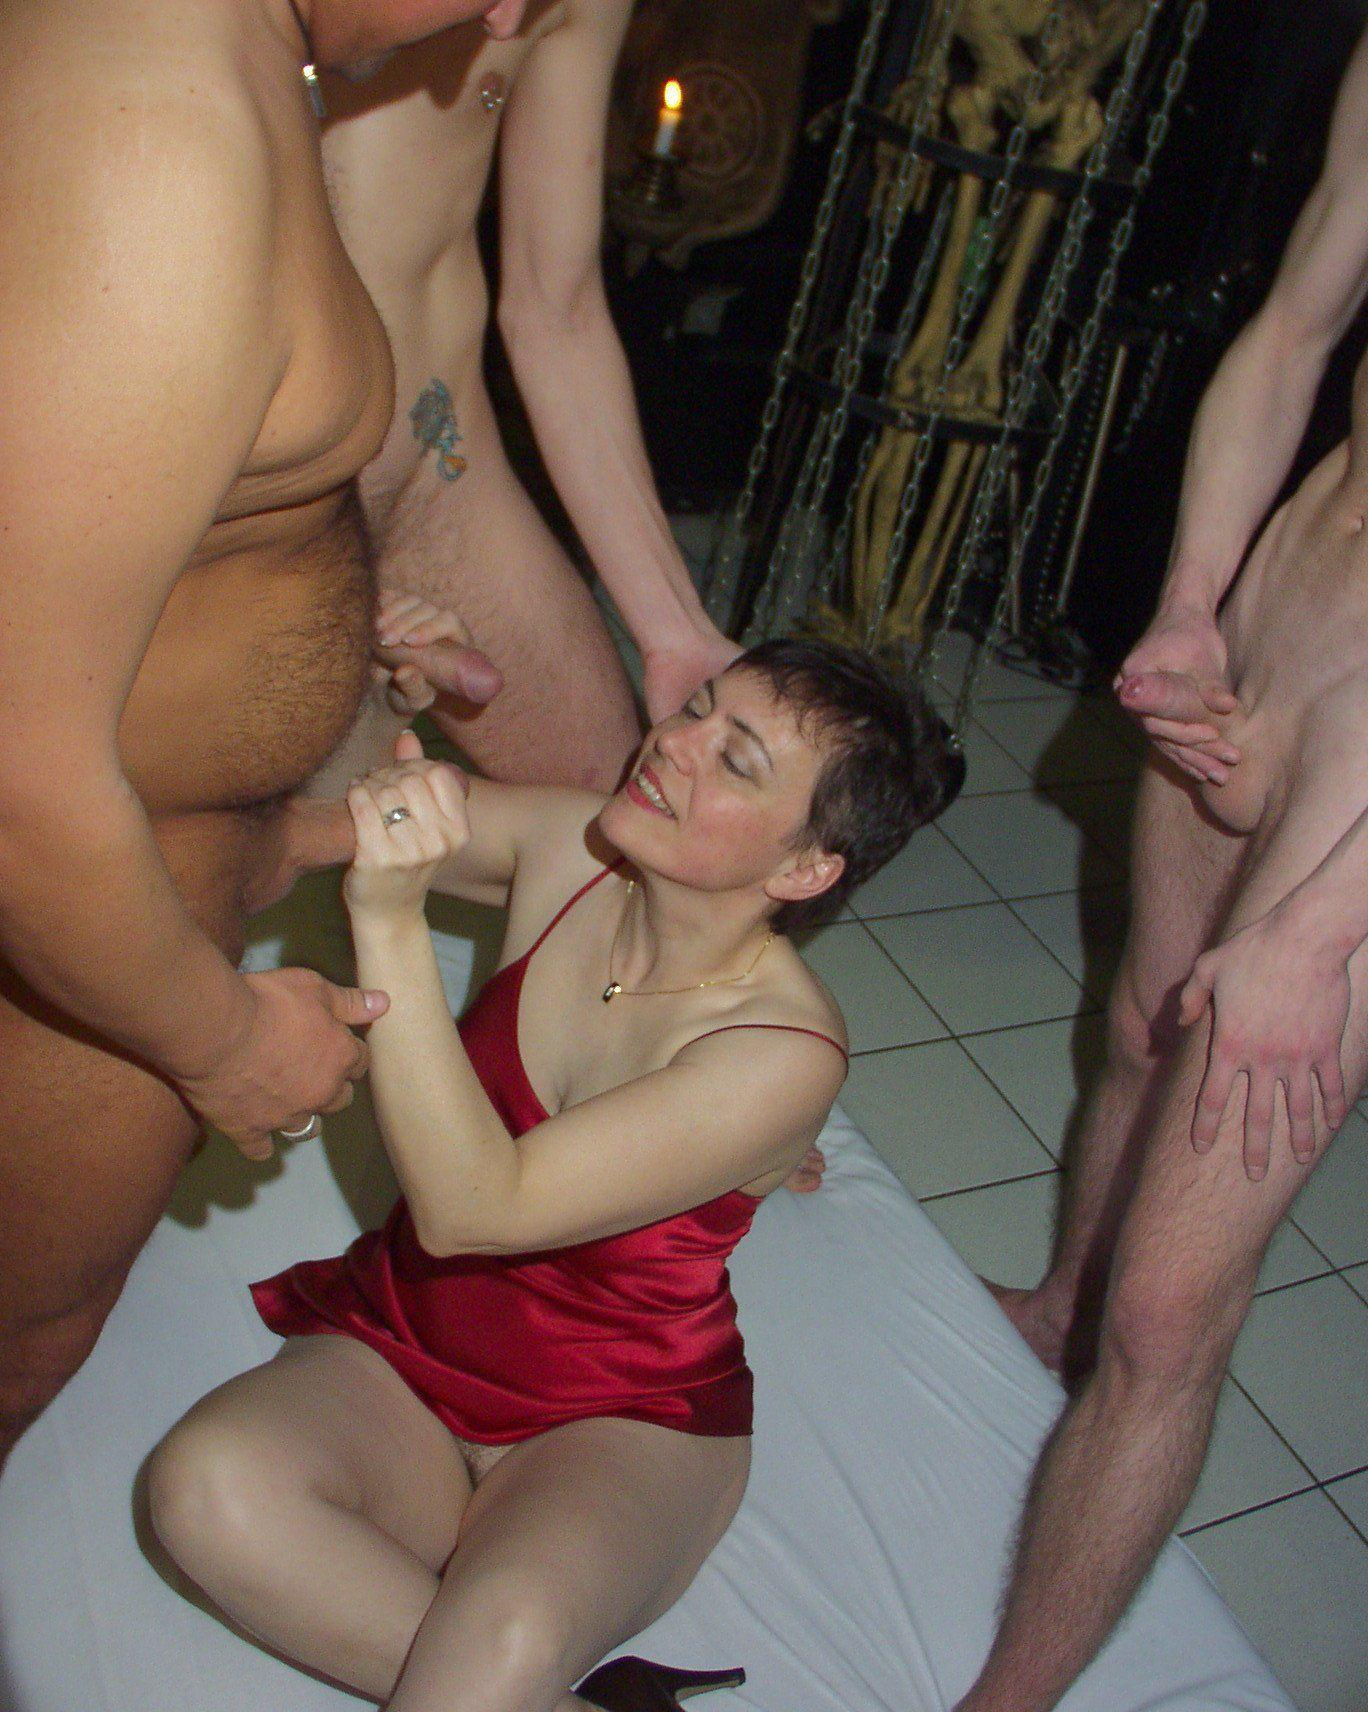 Mature cock and ball torture